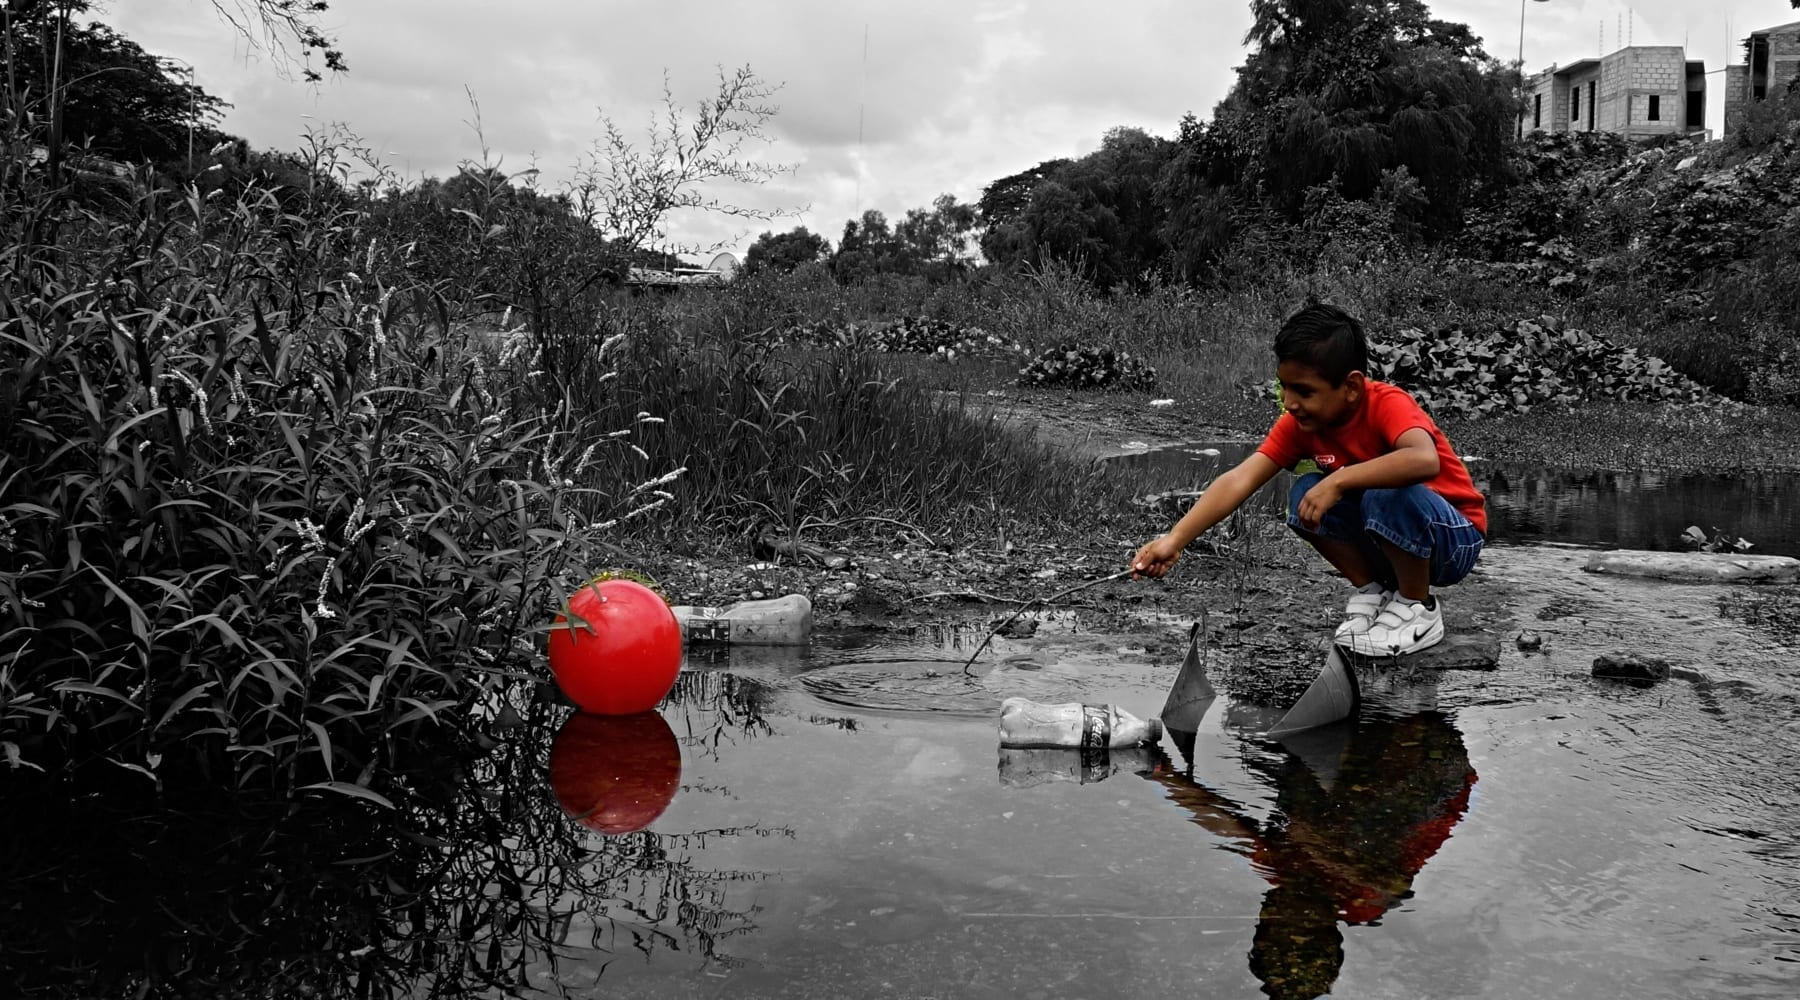 A young boy trying to get his red ball out of polluted water